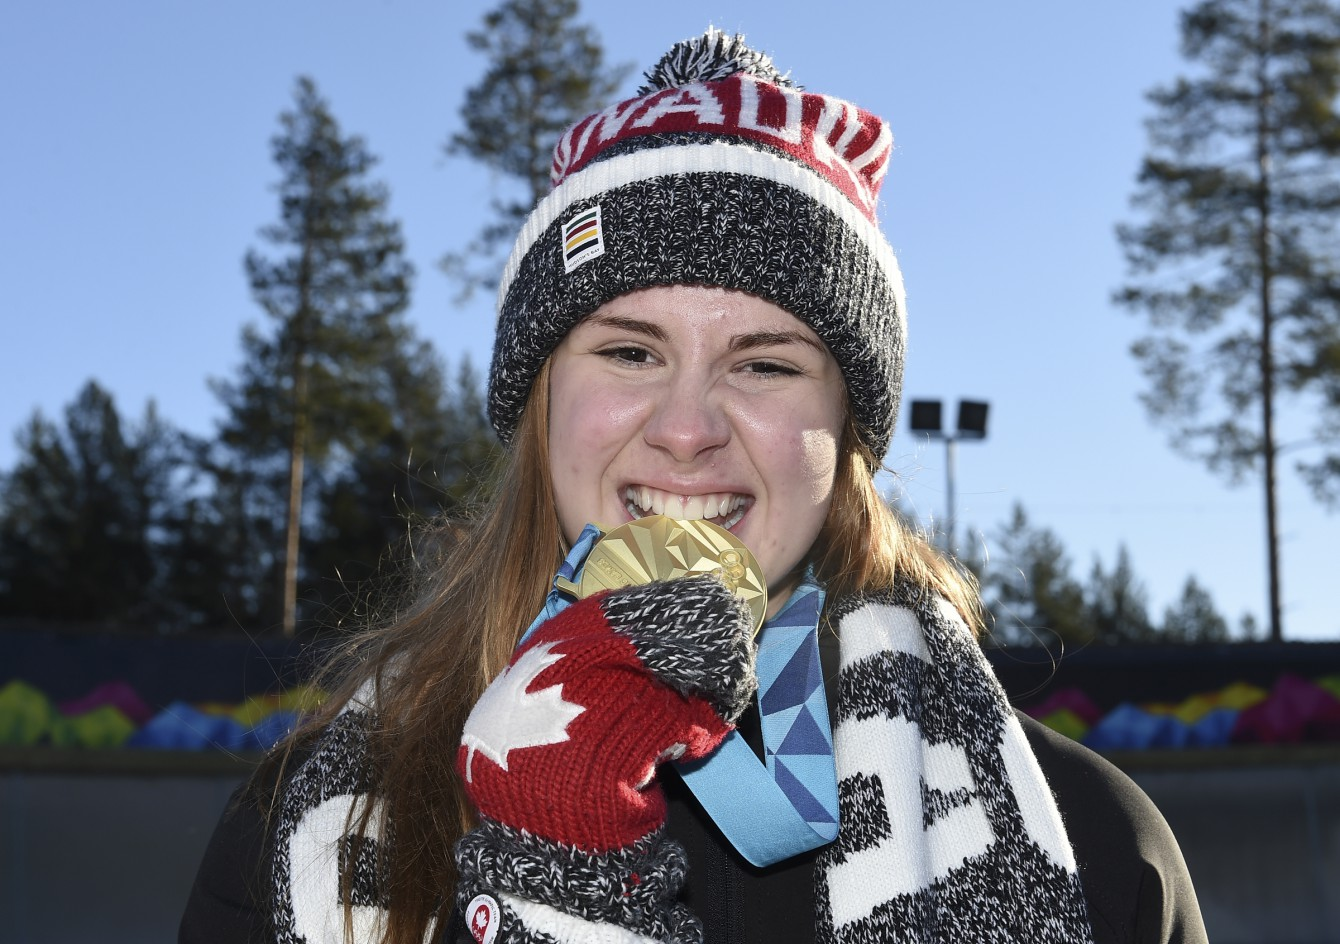 Brooke Apshkrum CAN poses for a photo after winning the Luge Women's Singles competition at Lillehammer Olympic Sliding Centre during the Winter Youth Olympic Games, Lillehammer, Norway, 15 February 2016. Photo: Jon Buckle for YIS/IOC Handout image supplied by YIS/IOC